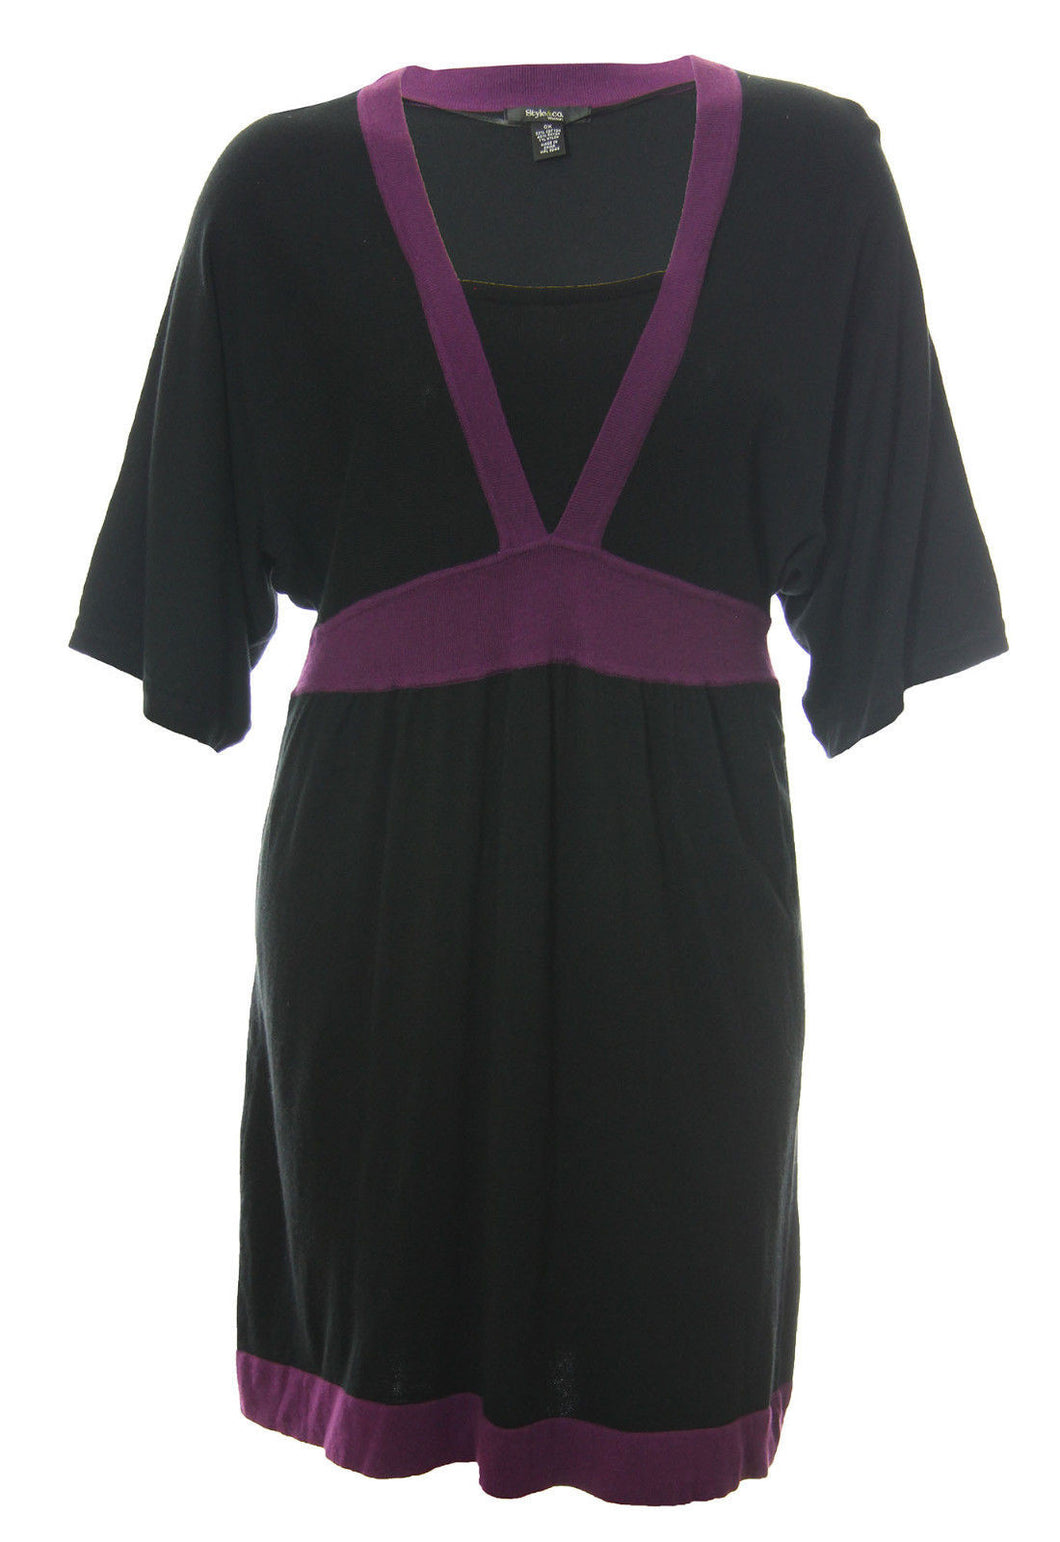 Style & Co Black & Purple Color Block 3/4 Sleeve Dress